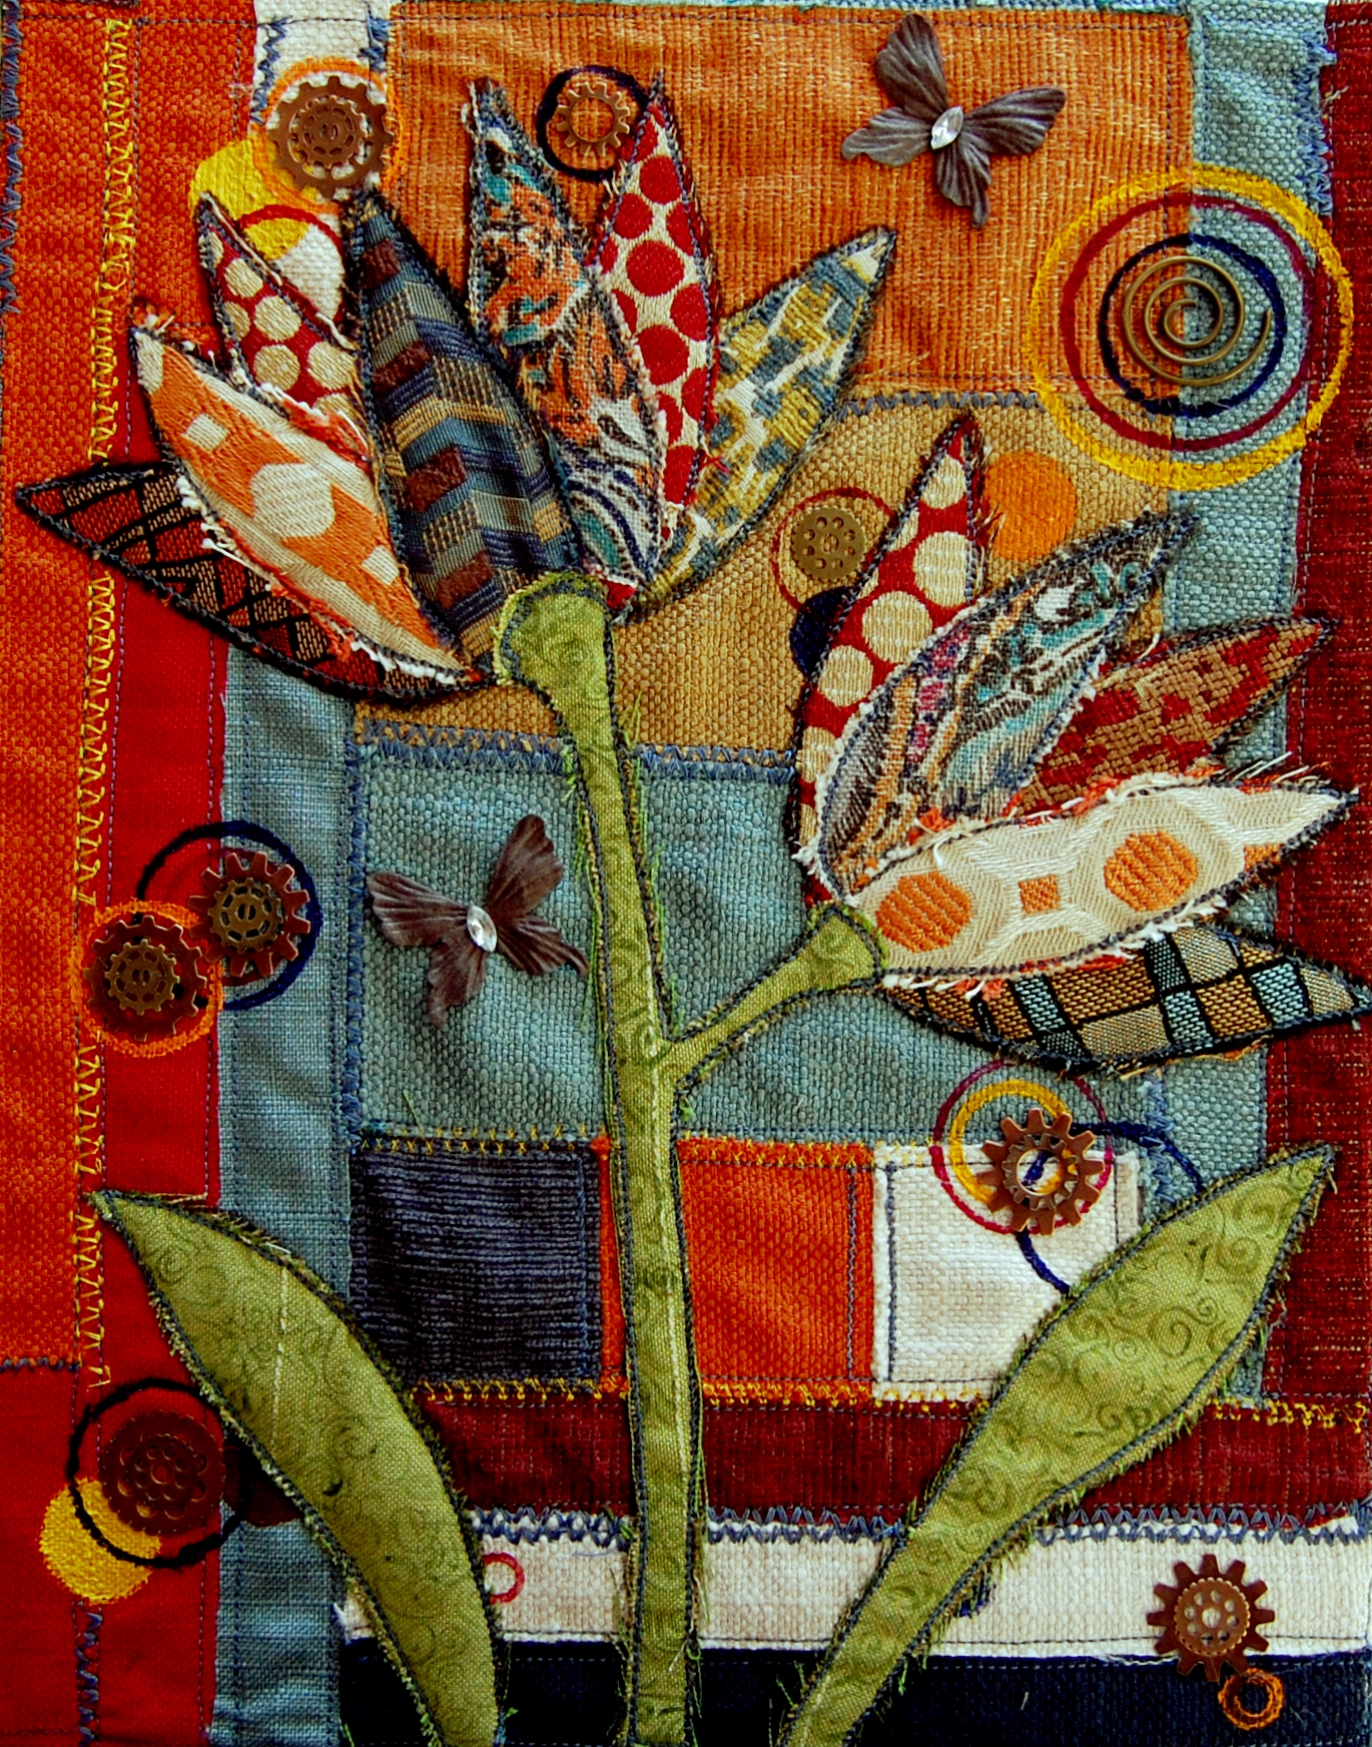 textile art on canvas